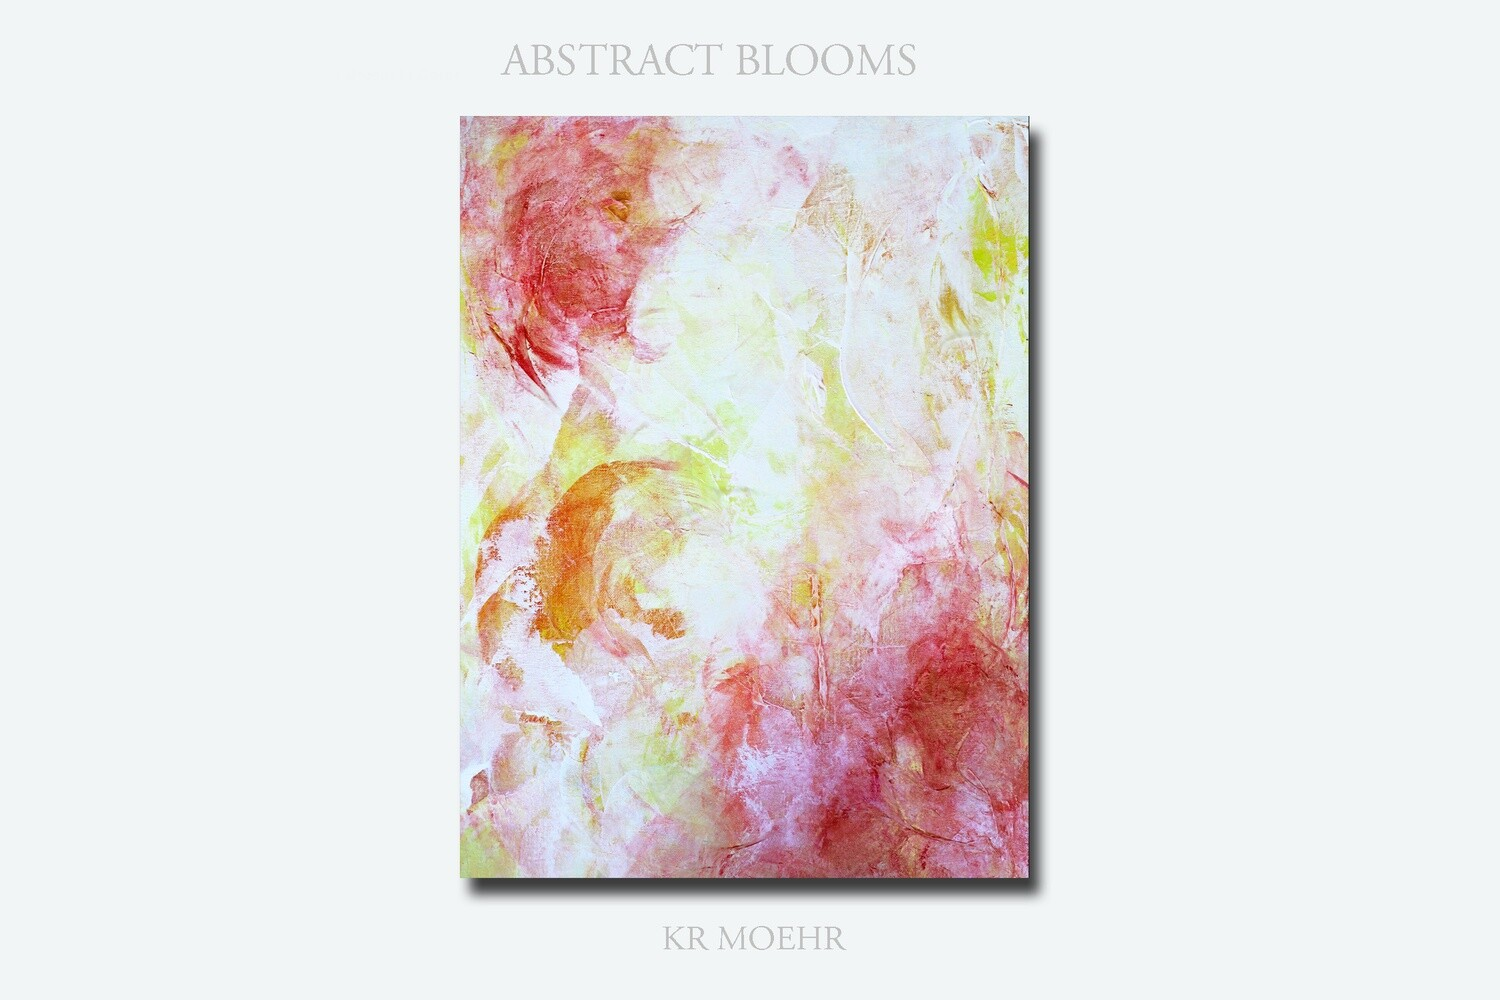 Abstract Blooms